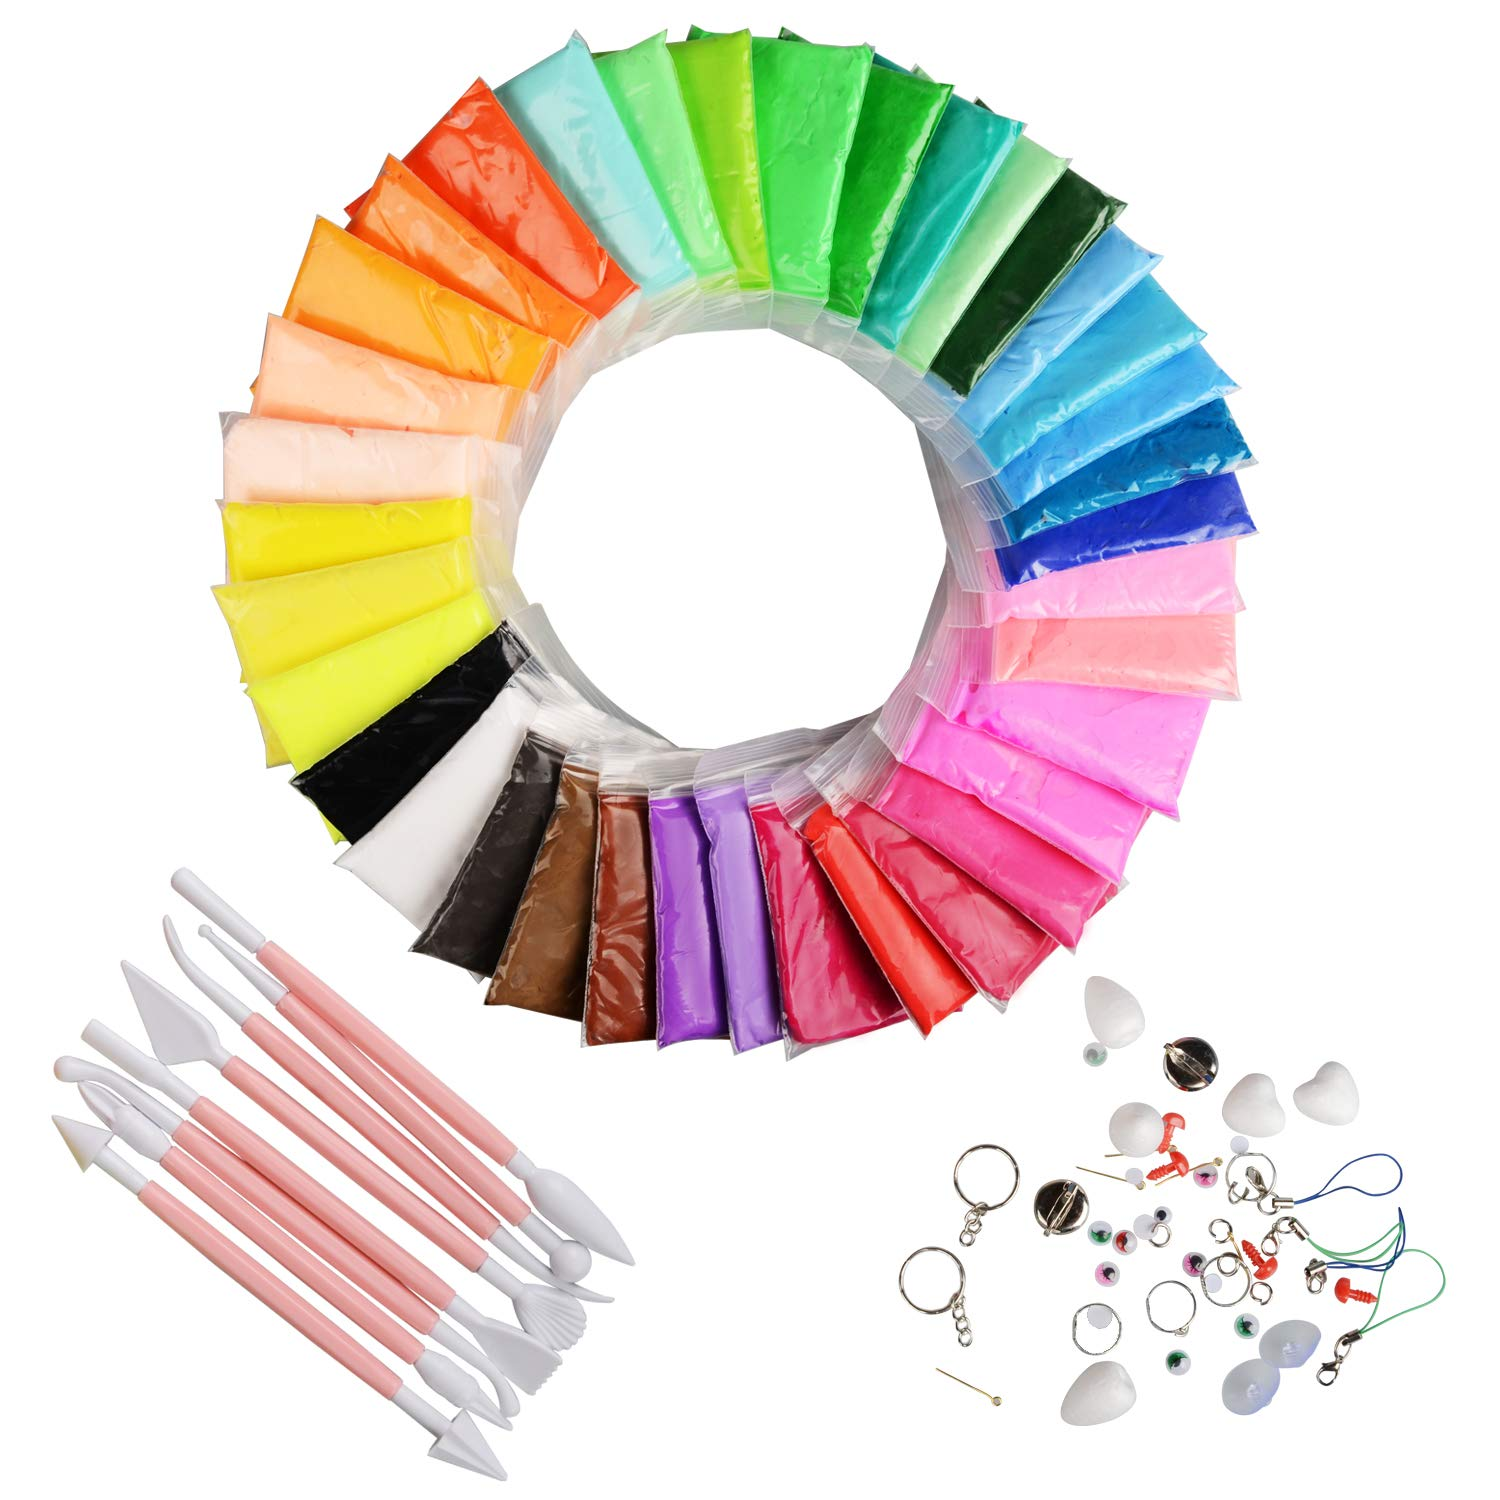 Hometall Modeling Clay Air Dry, 36 Colors DIY Ultra-light Molding Clay Soft Magic Plasticine Craft Toy with Tools, Best Kids Christmas Gifts (10oz/Pack) by Hometall